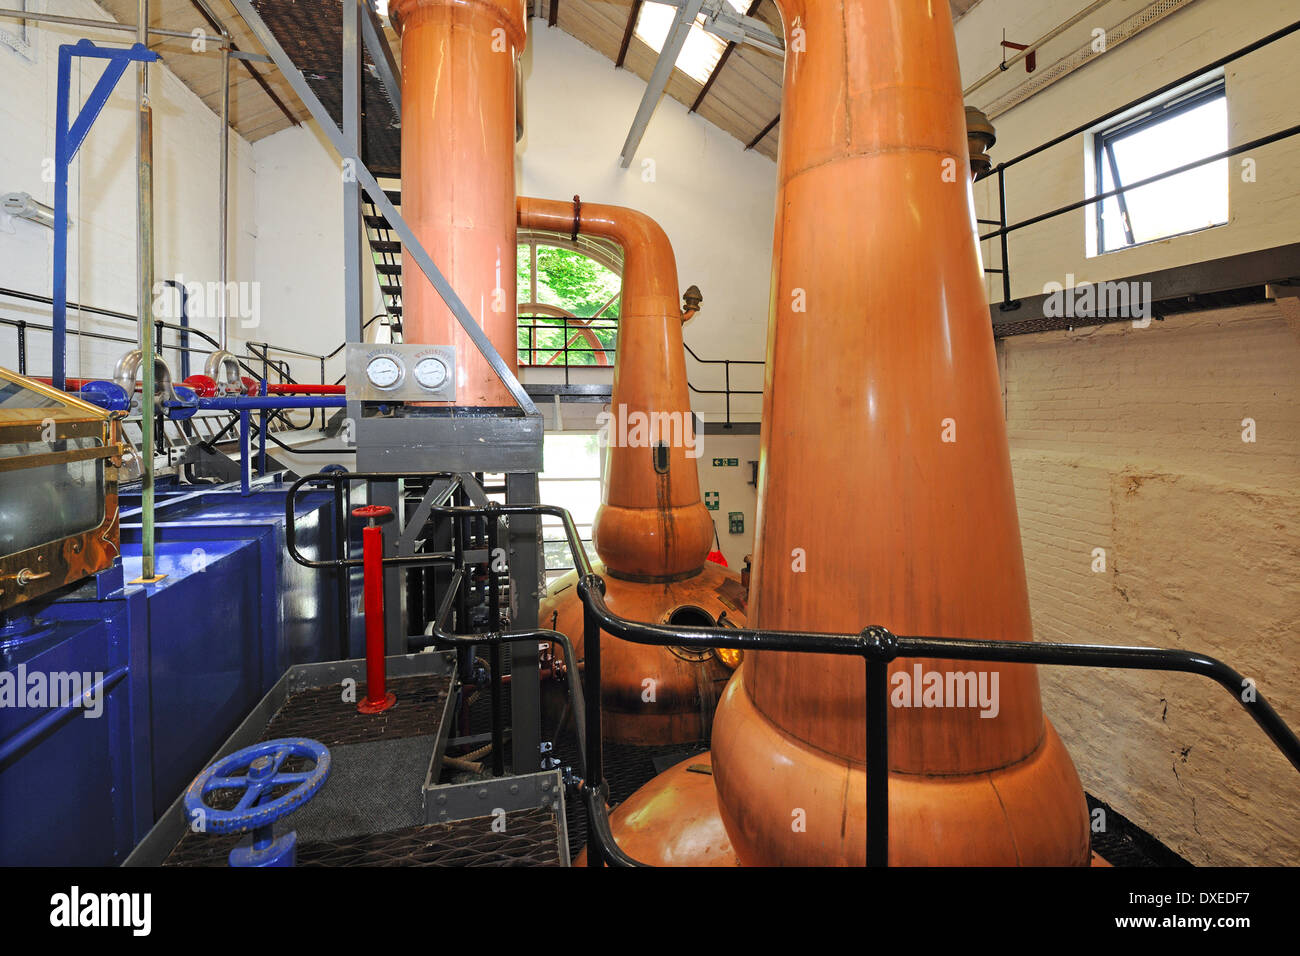 The Still house in Tobermory Distillery, isle of Mull. - Stock Image